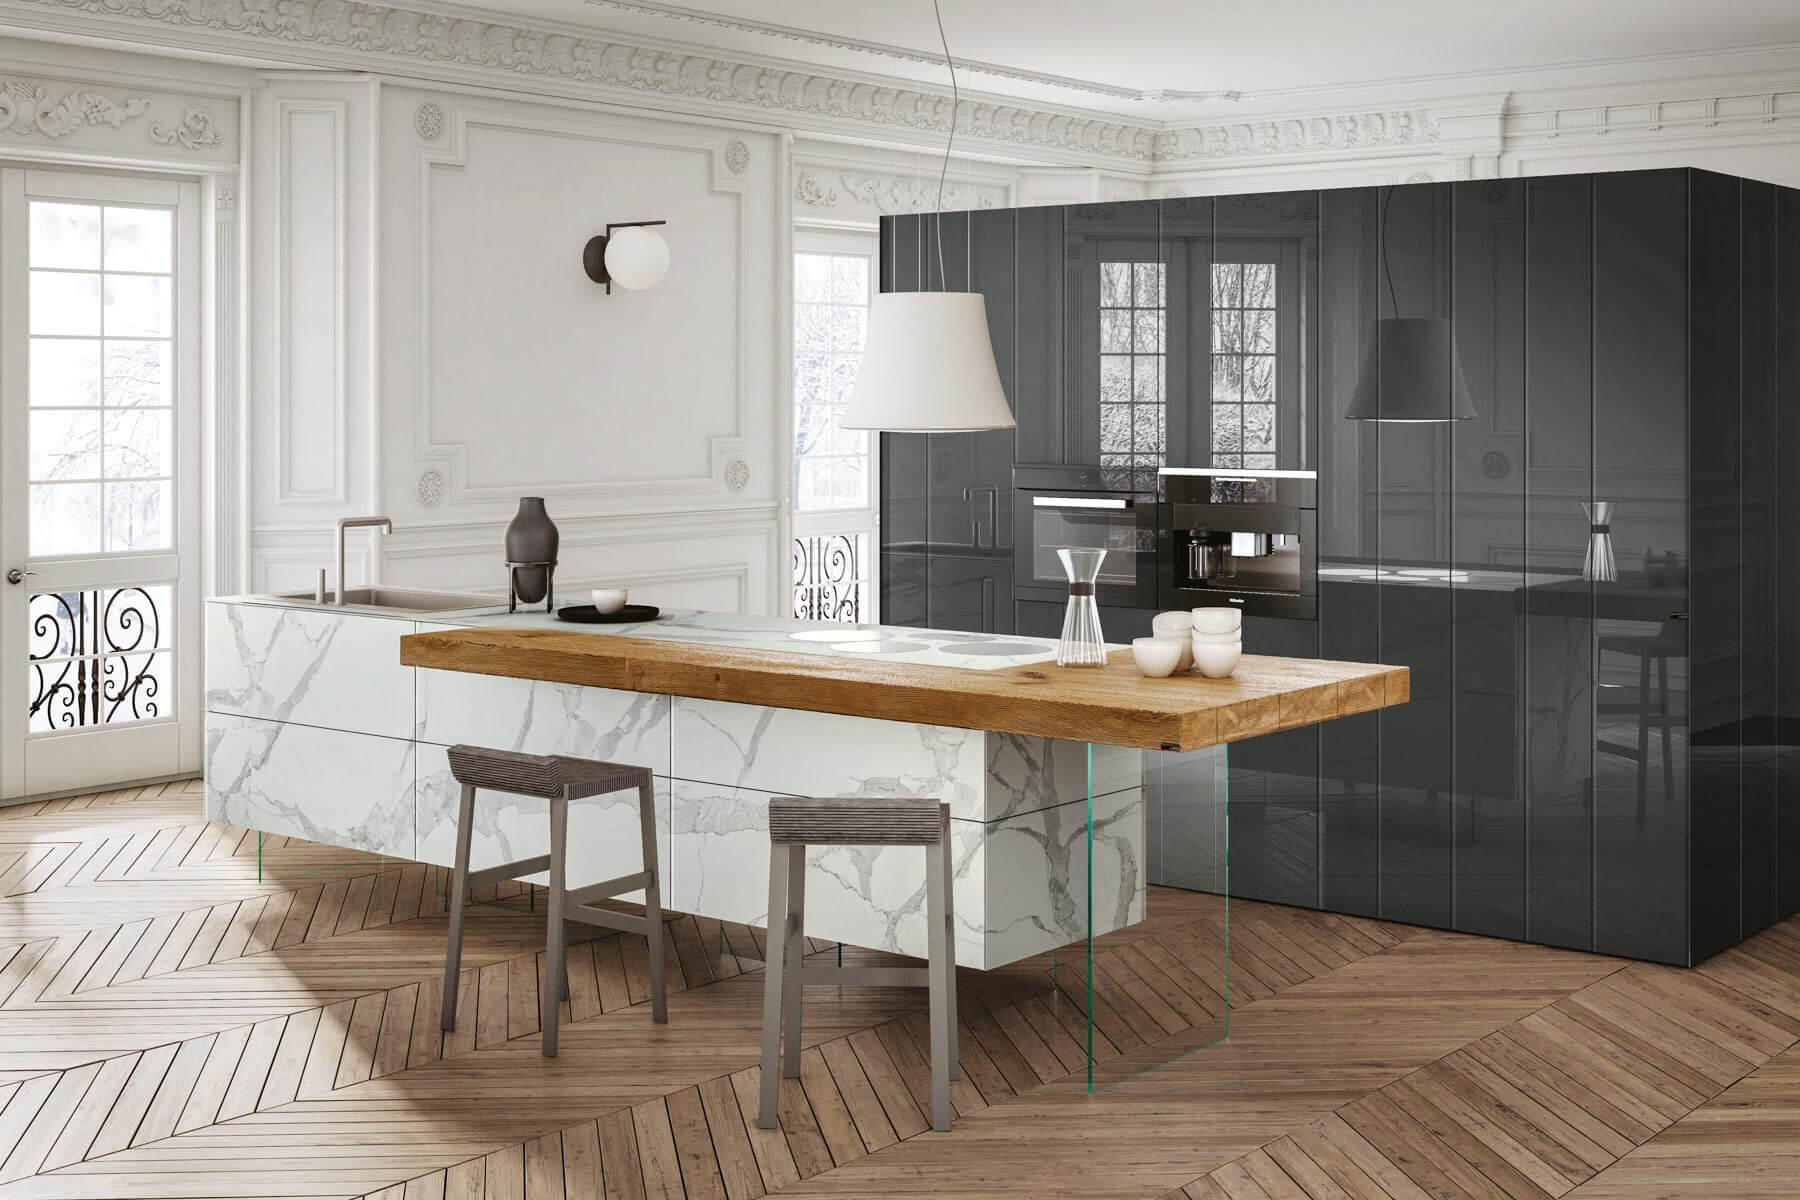 2_Kitchen-island-36e8-lago-design